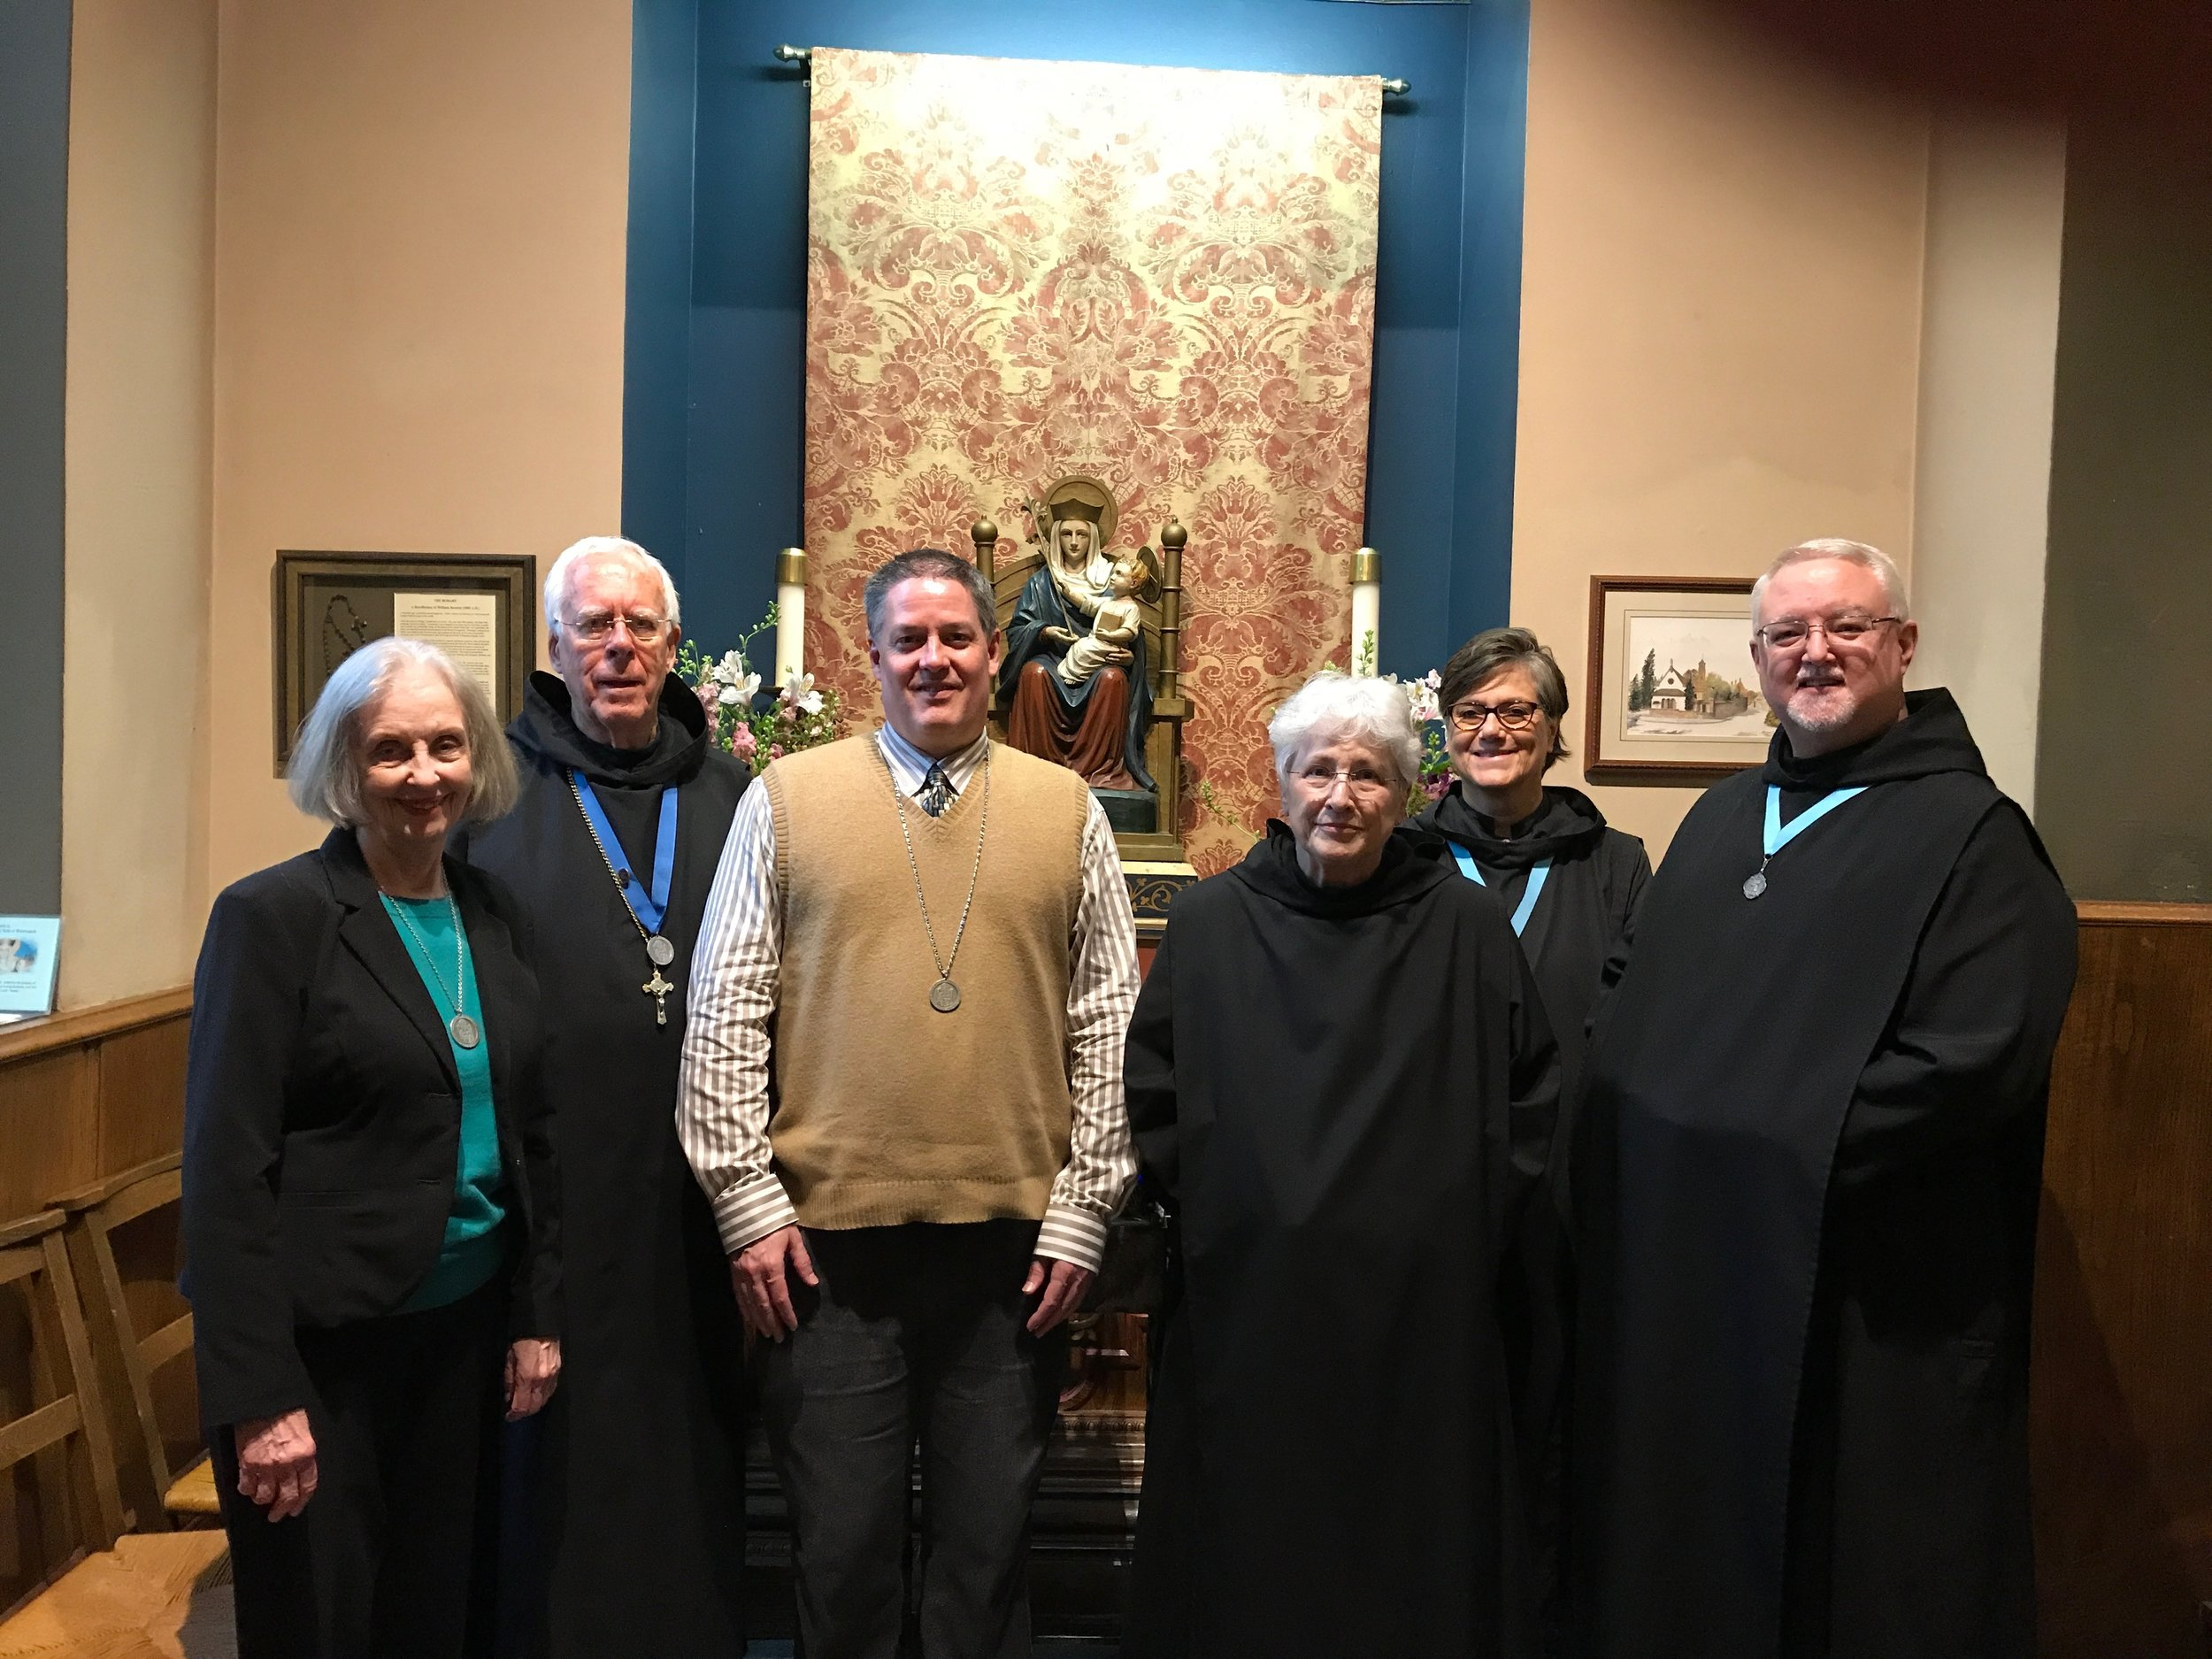 The Community of Our Lady of Walsingham at the Shrine of Our Lady at Grace Church, Sheboygan, WI..